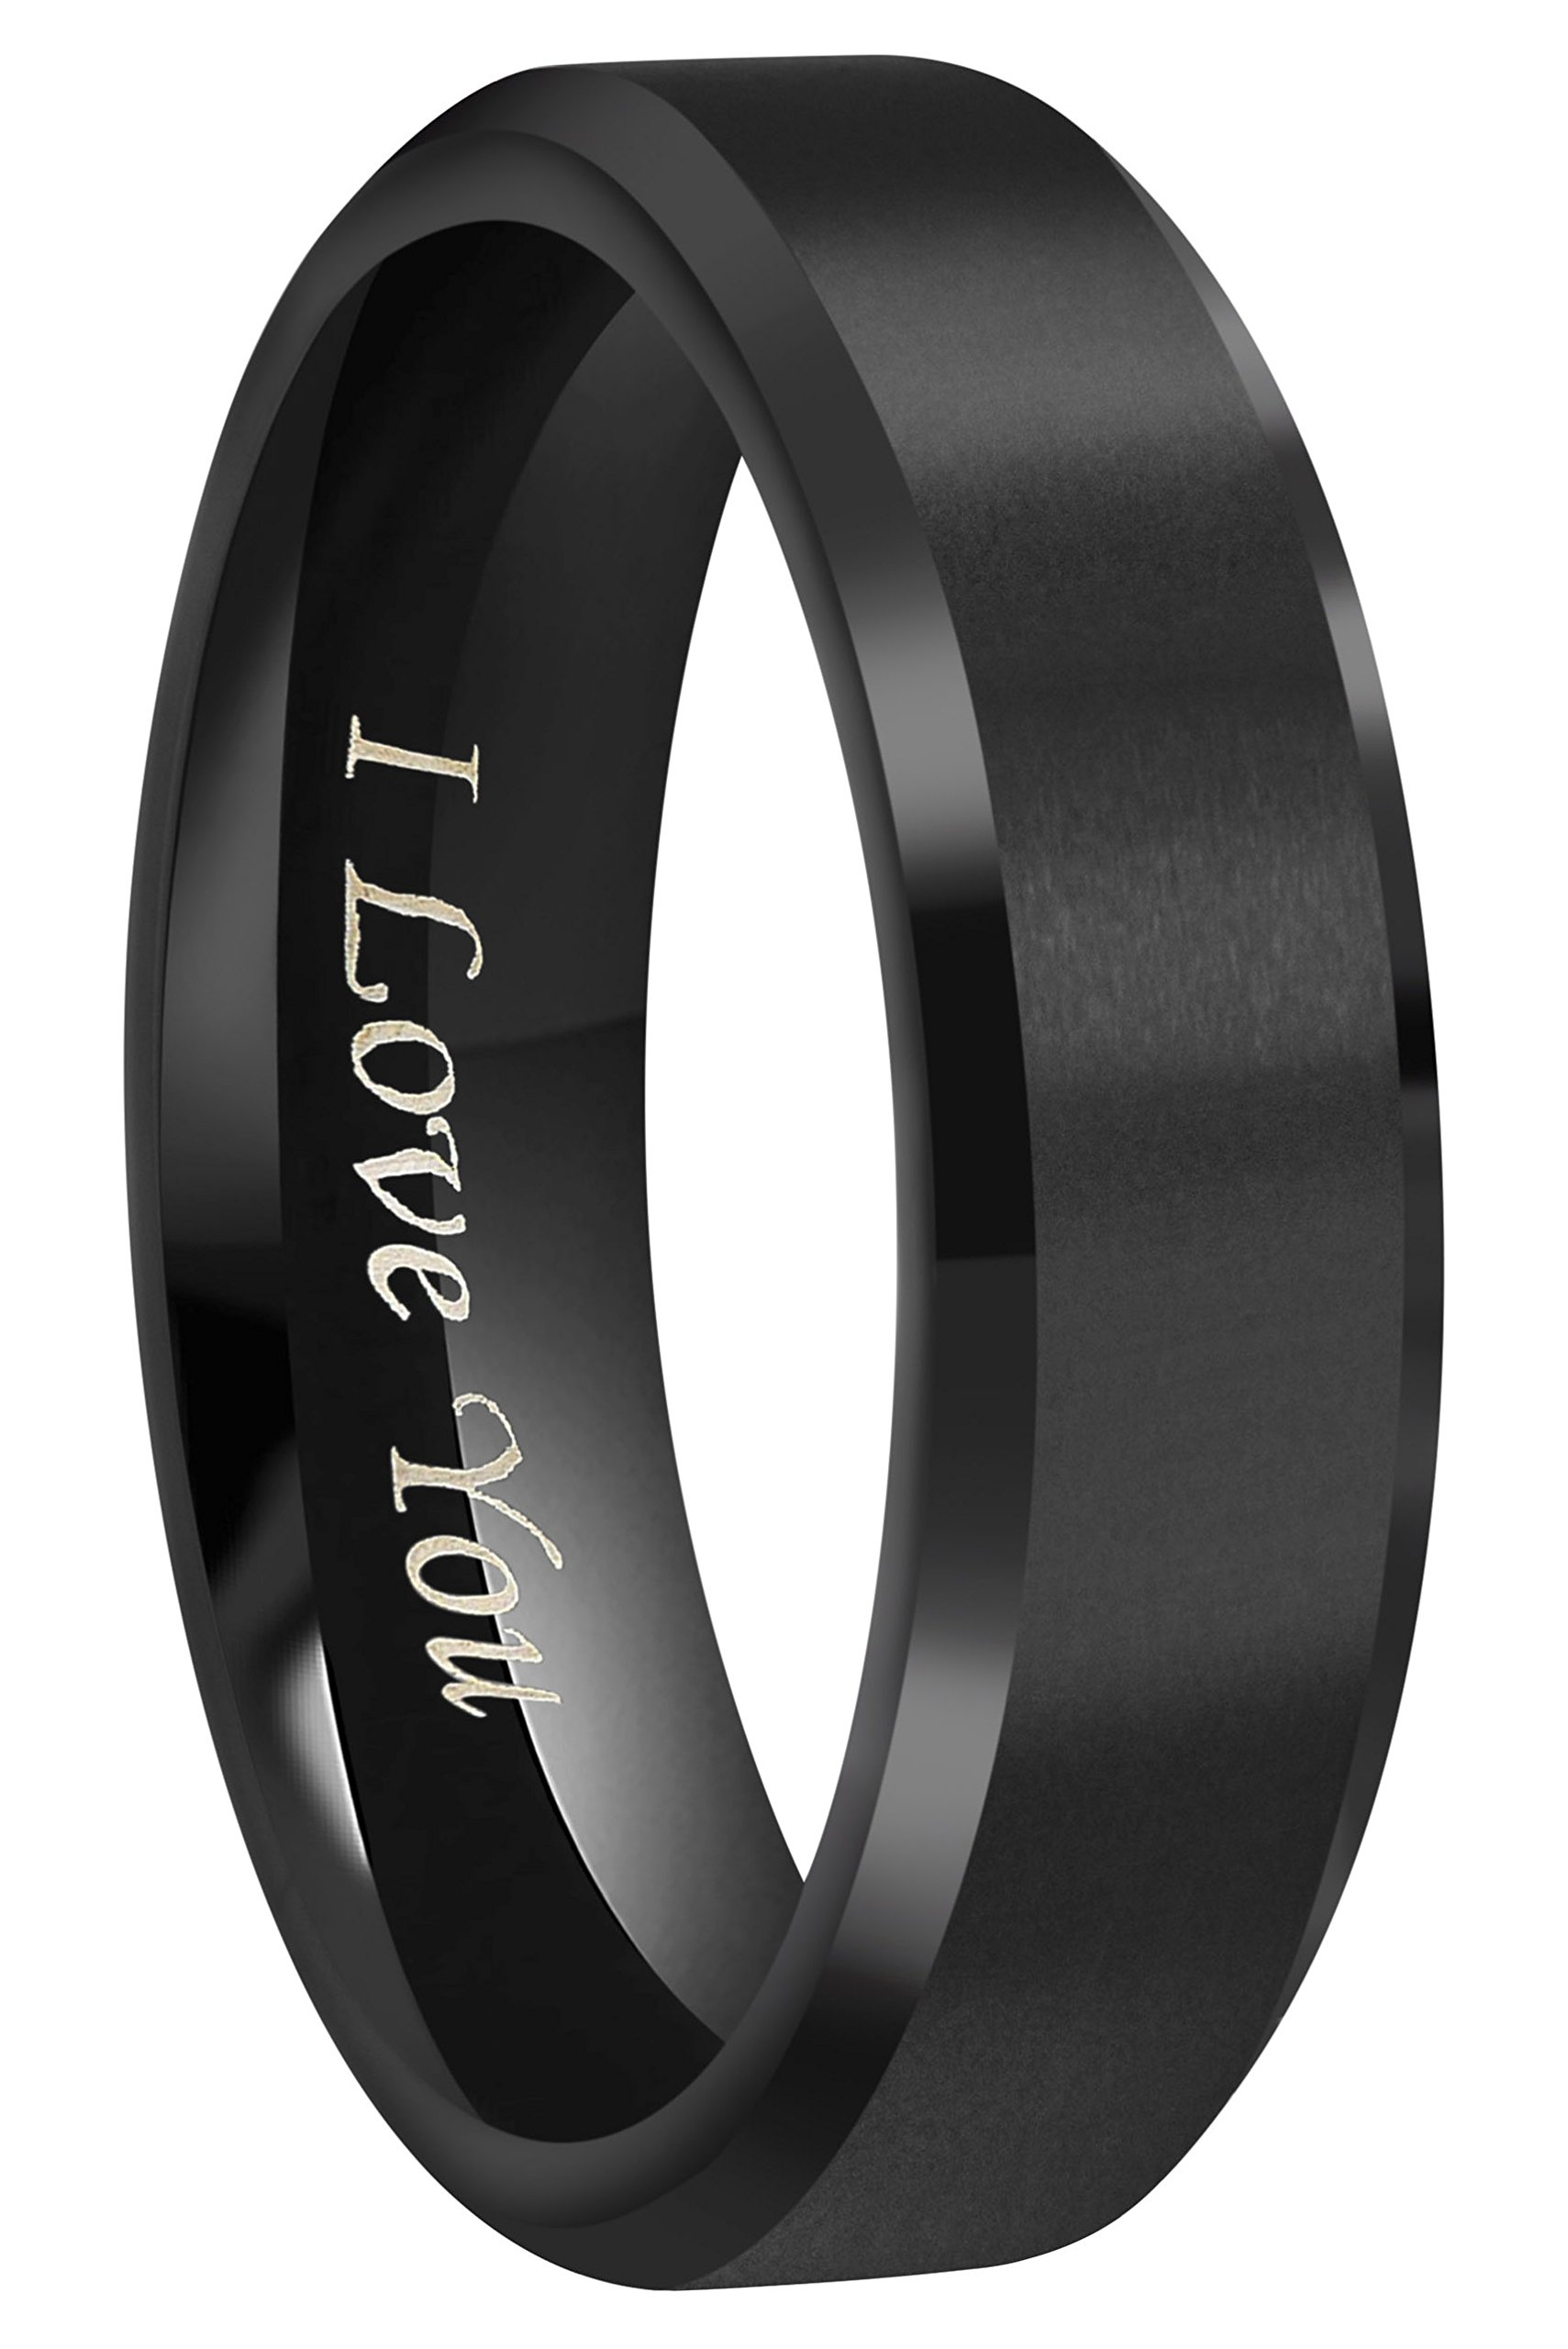 4mm/6mm/8mm Black Titanium Wedding Couple Bands Rings Men Women Matte Finish Beveled Edges Engraved ''I Love You'' Comfort Fit Size 4 To 16 (6mm,6)